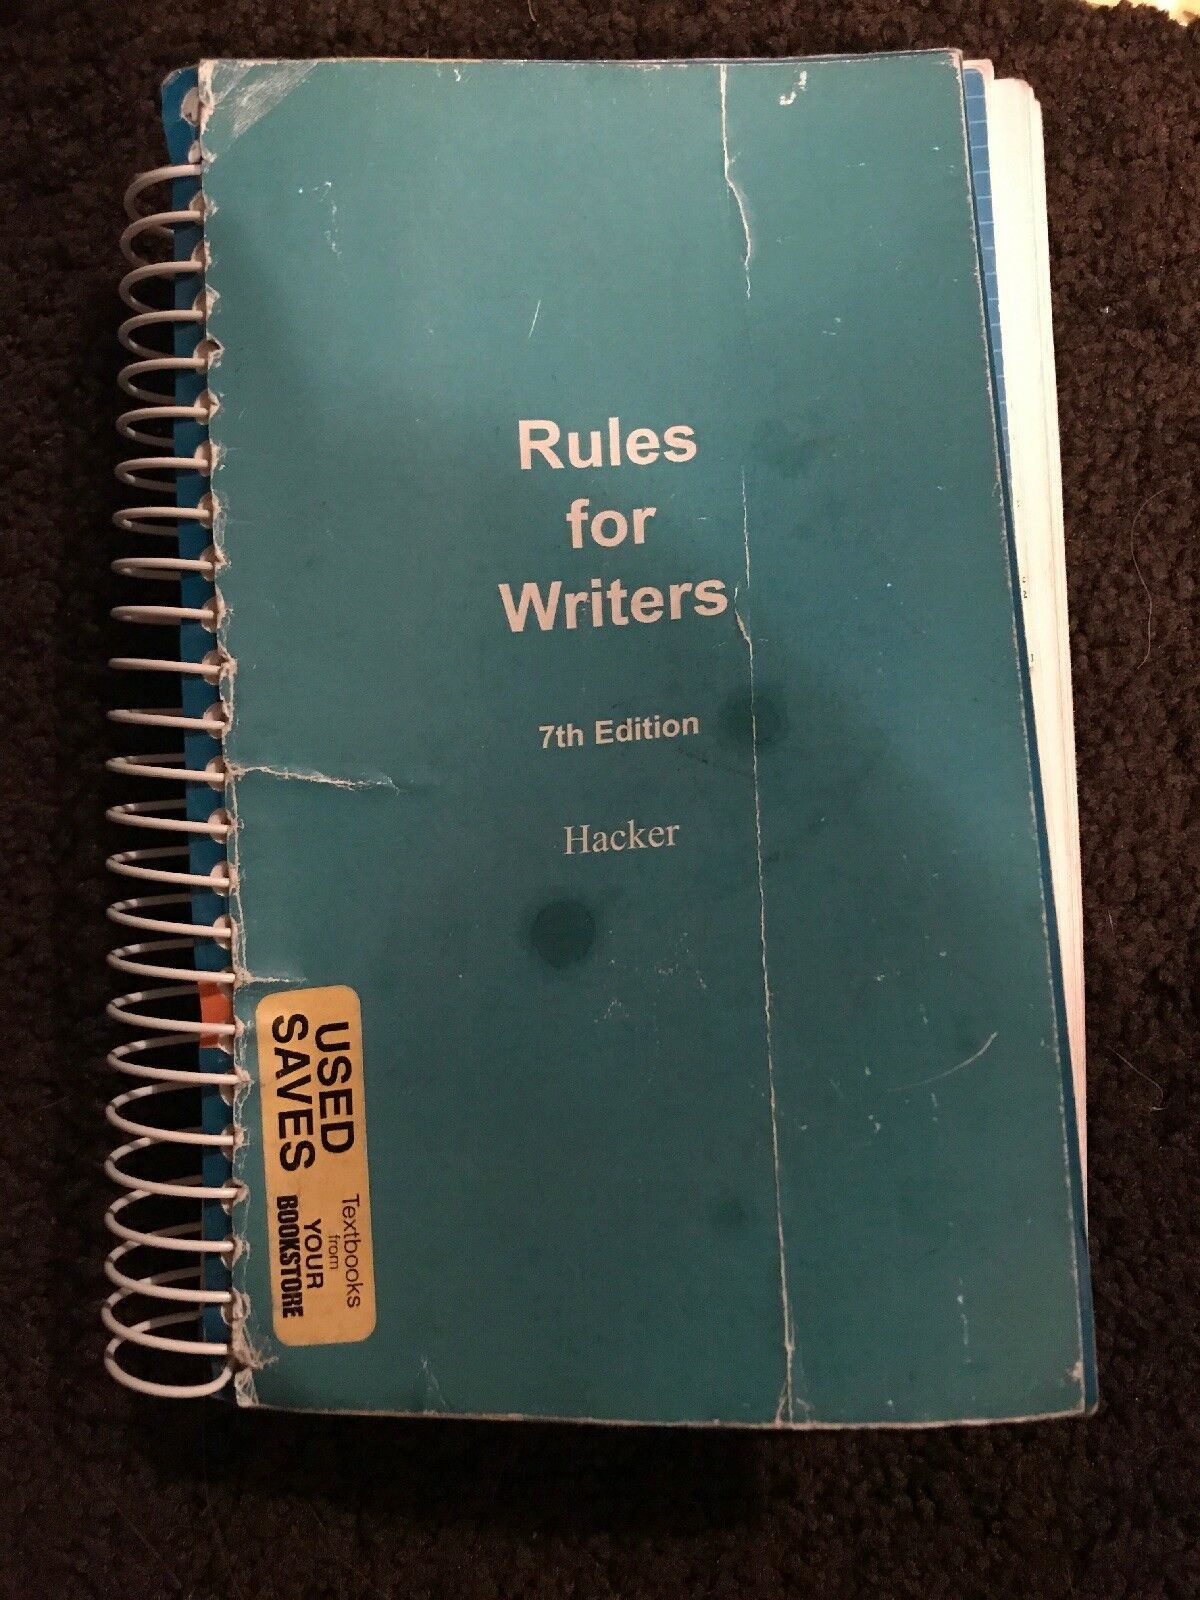 Amazon. Com: developmental exercises for rules for writers.